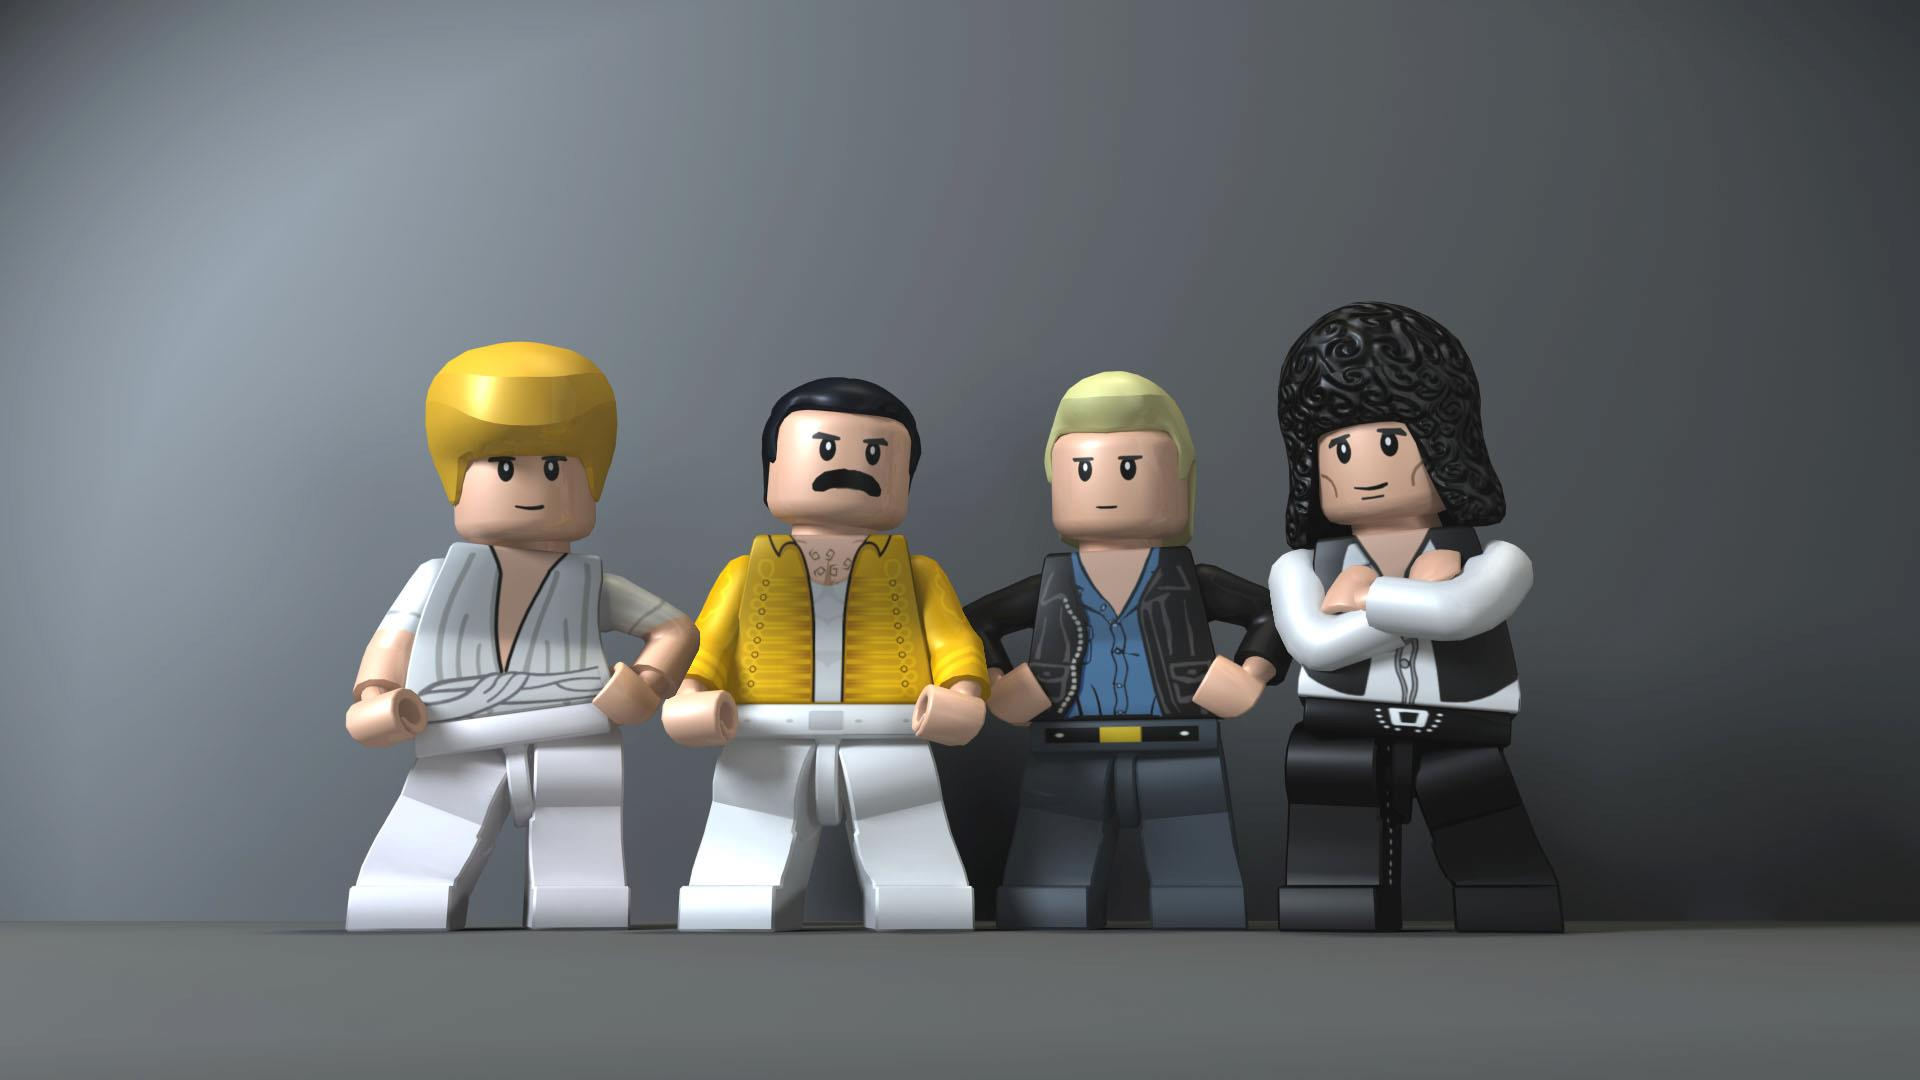 Queen Lego